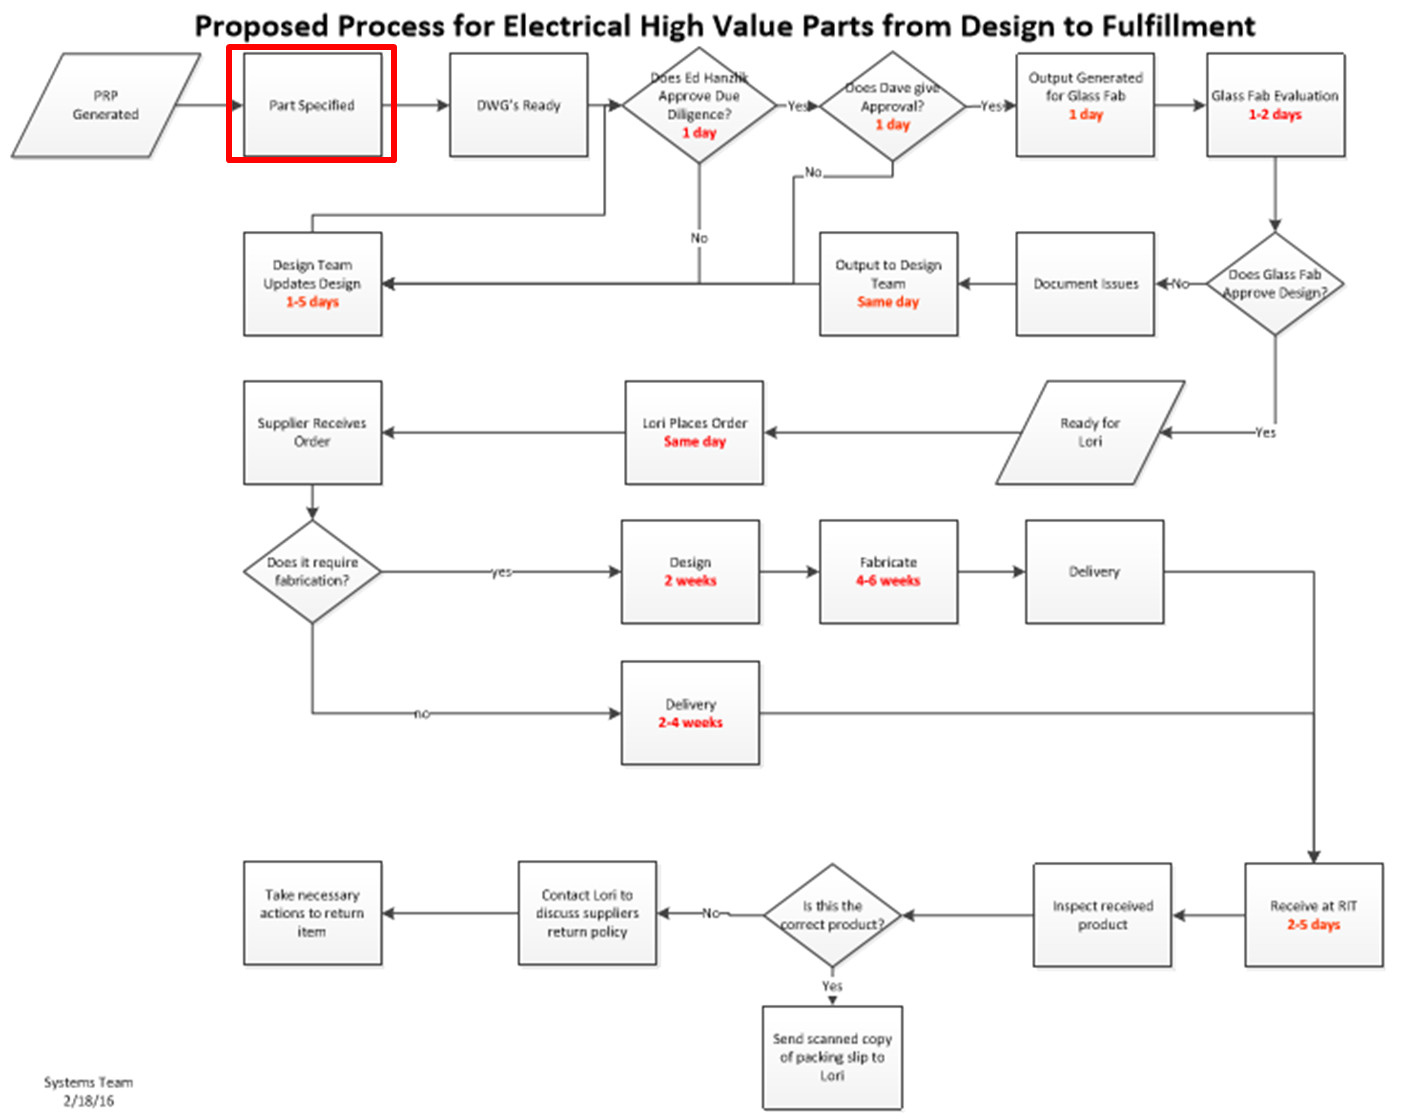 electrical process map wk 11 2 0 png